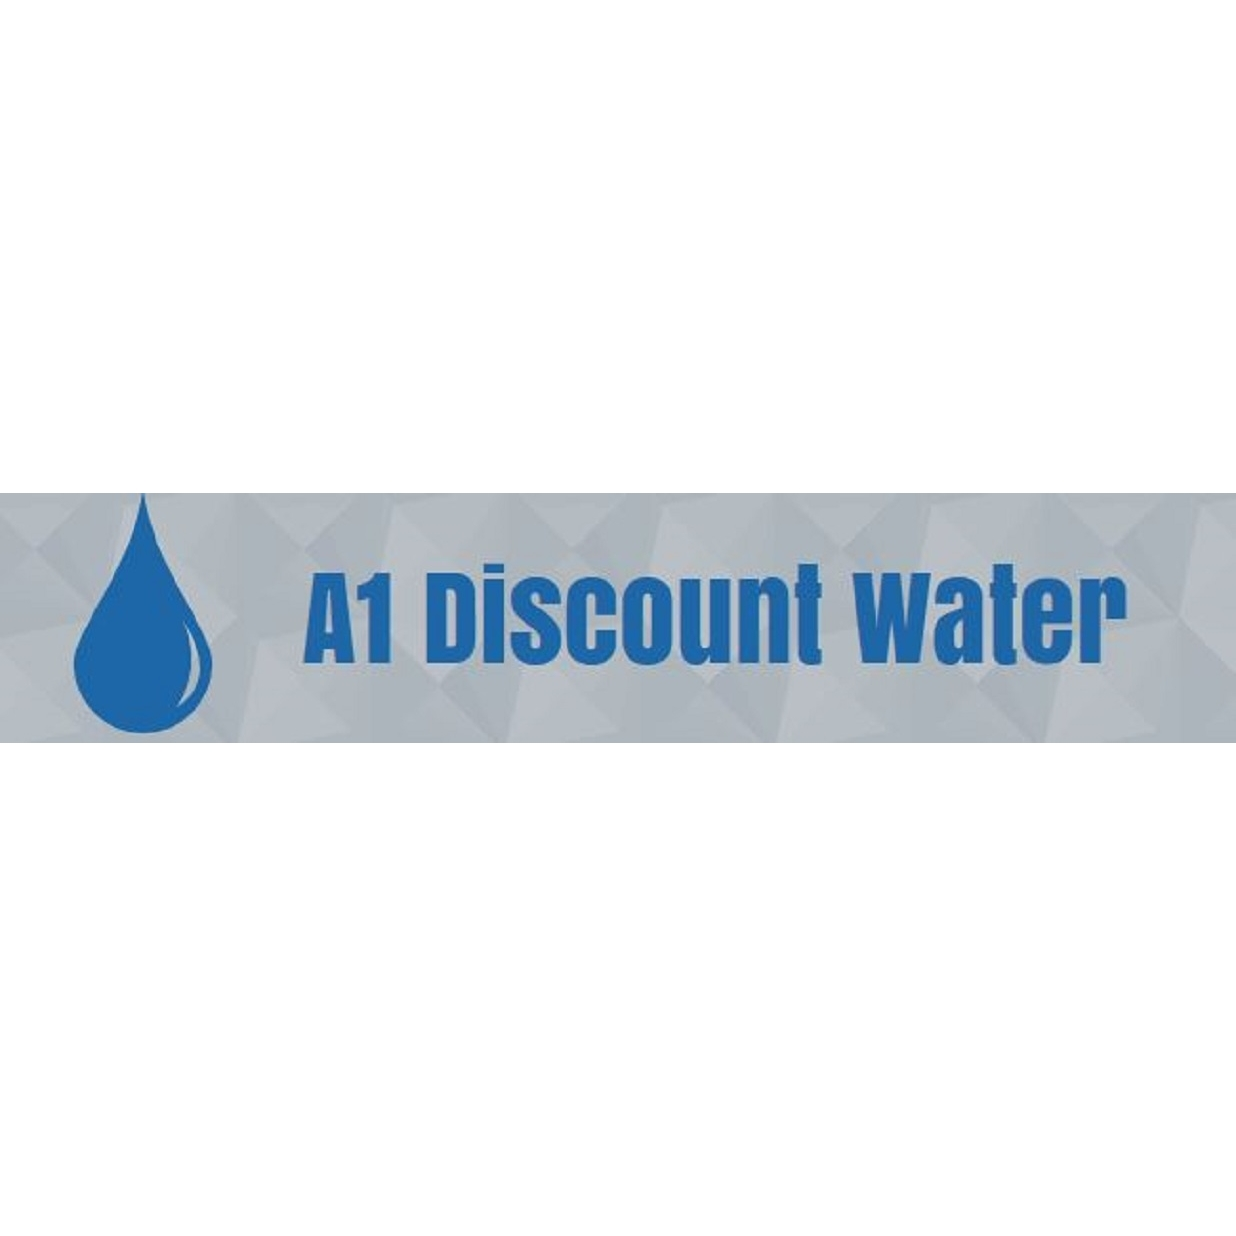 A -1 Discount Water